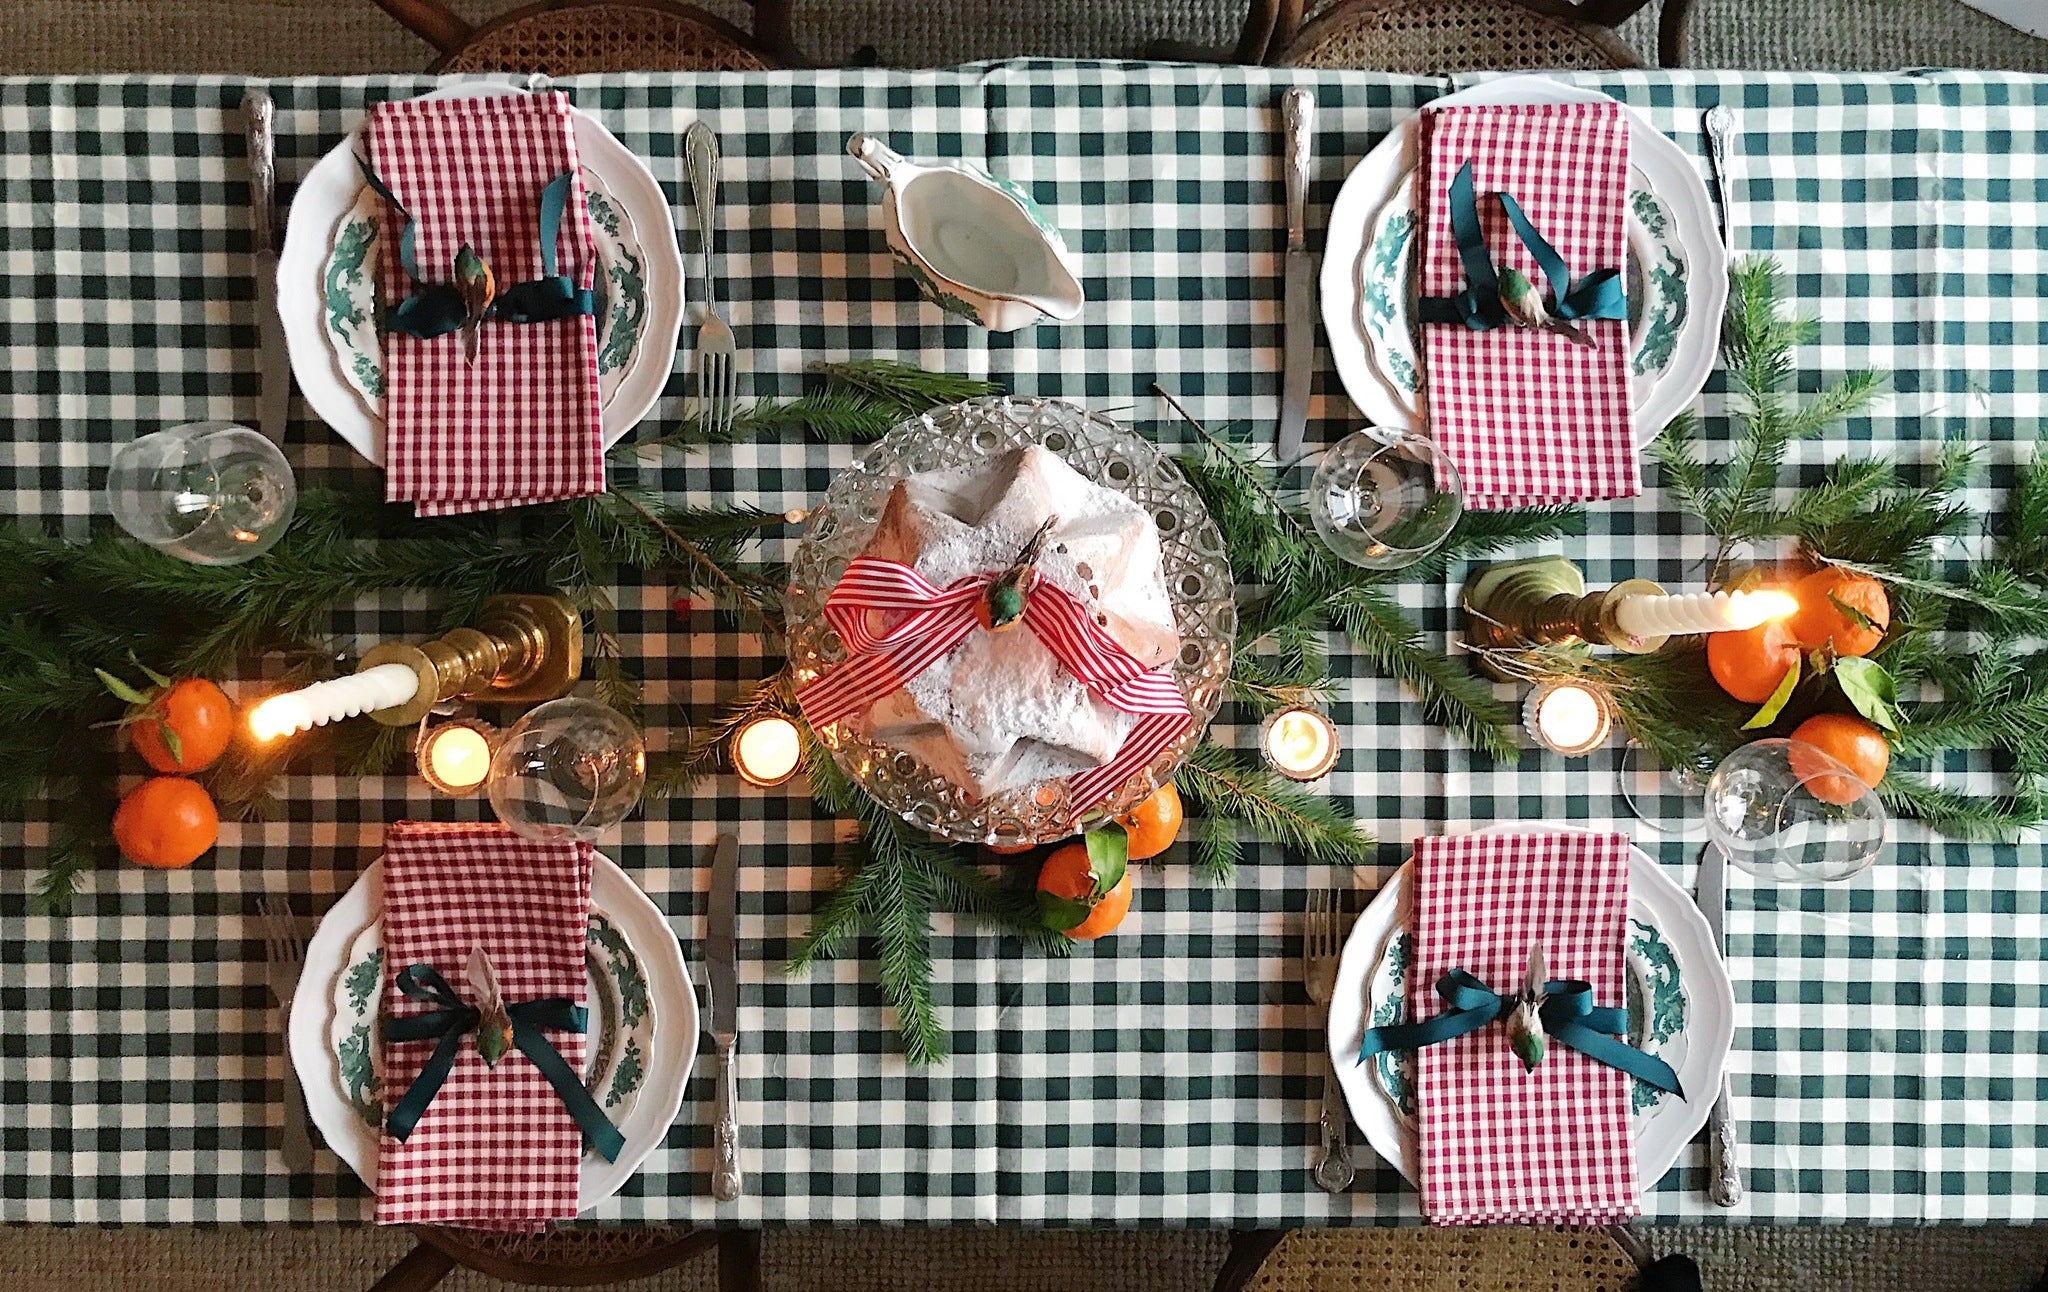 Christmas table with gingham table cloth and decorations